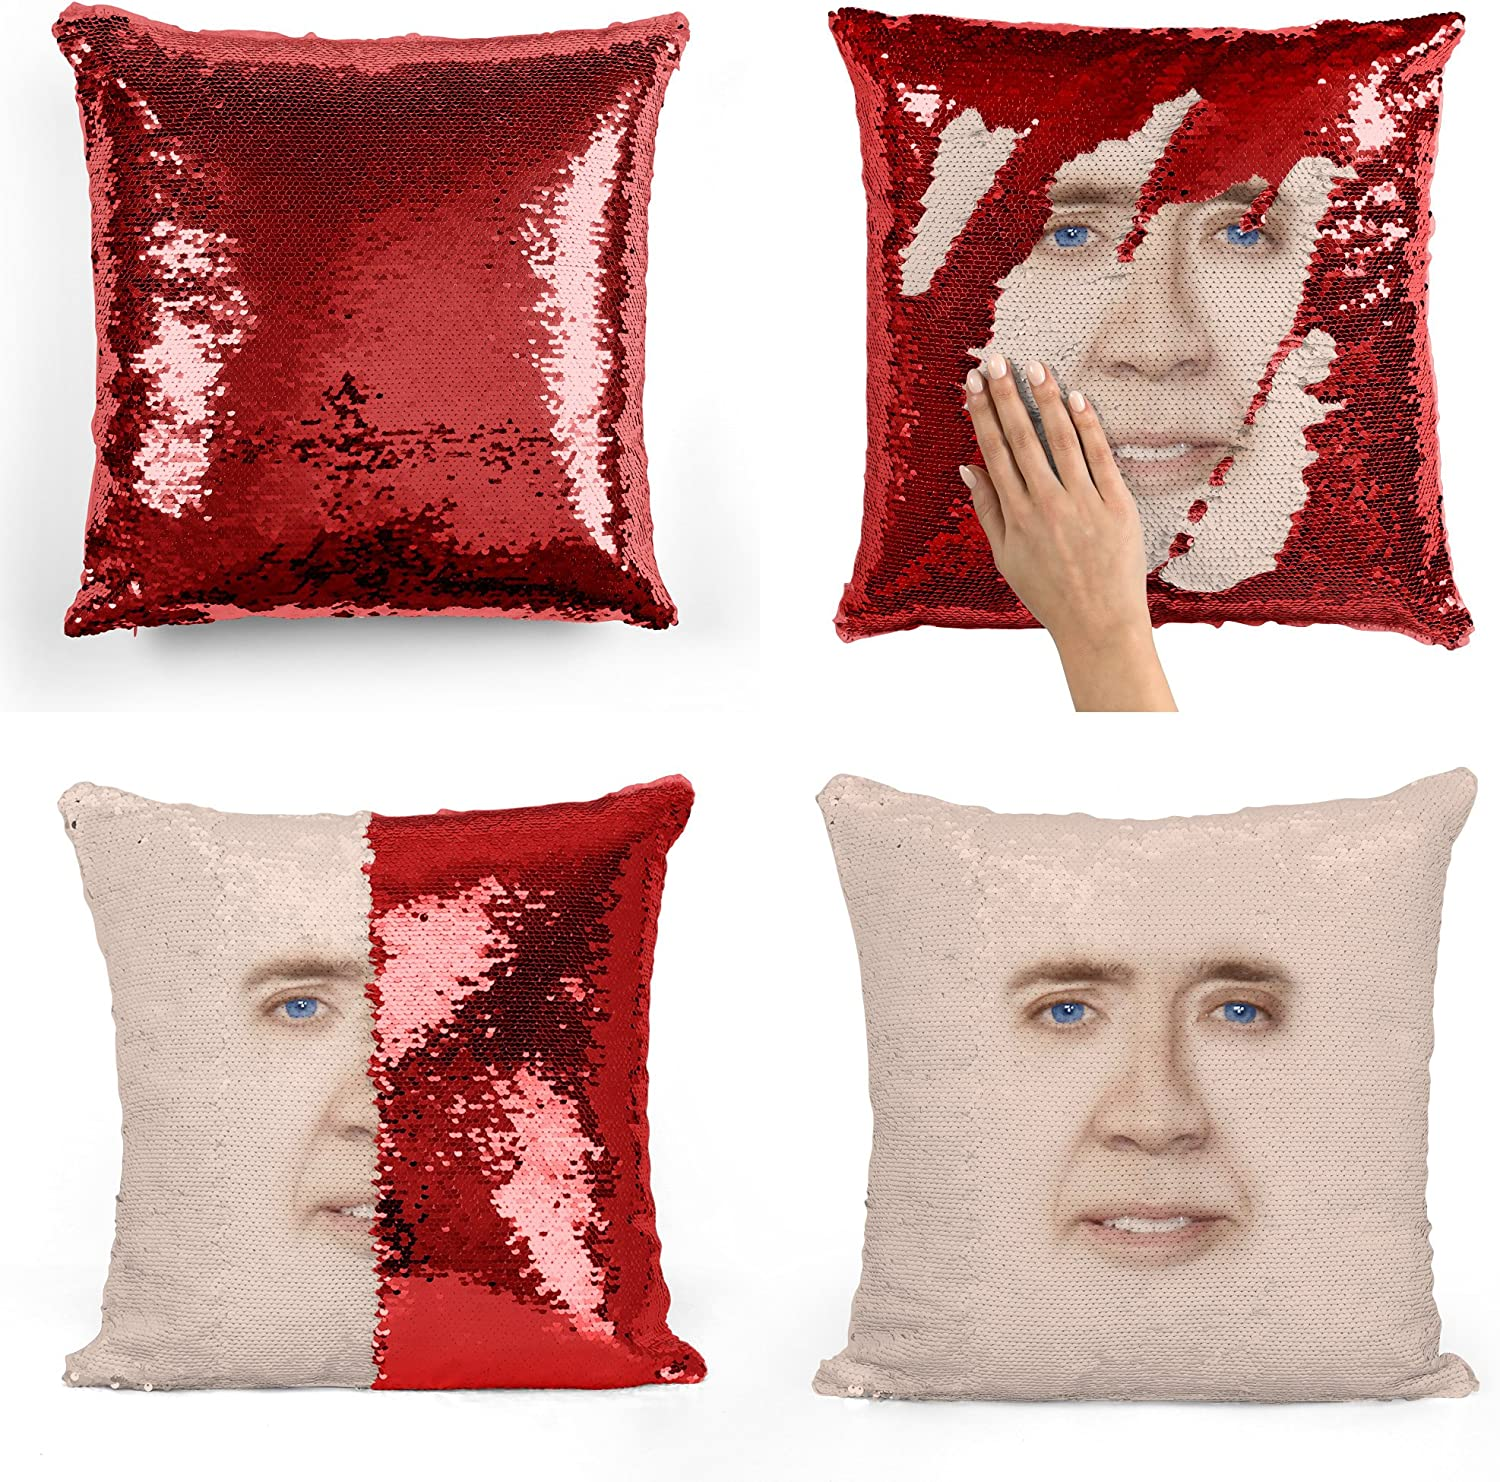 Nicolas Cage Sequin Pillow, Sequin Pillowcase, Two Color Pillow, Gift for her, Gift for him, Magic Pillow, Mermaid Pillow, Scales Pillow Cover, Funny ...